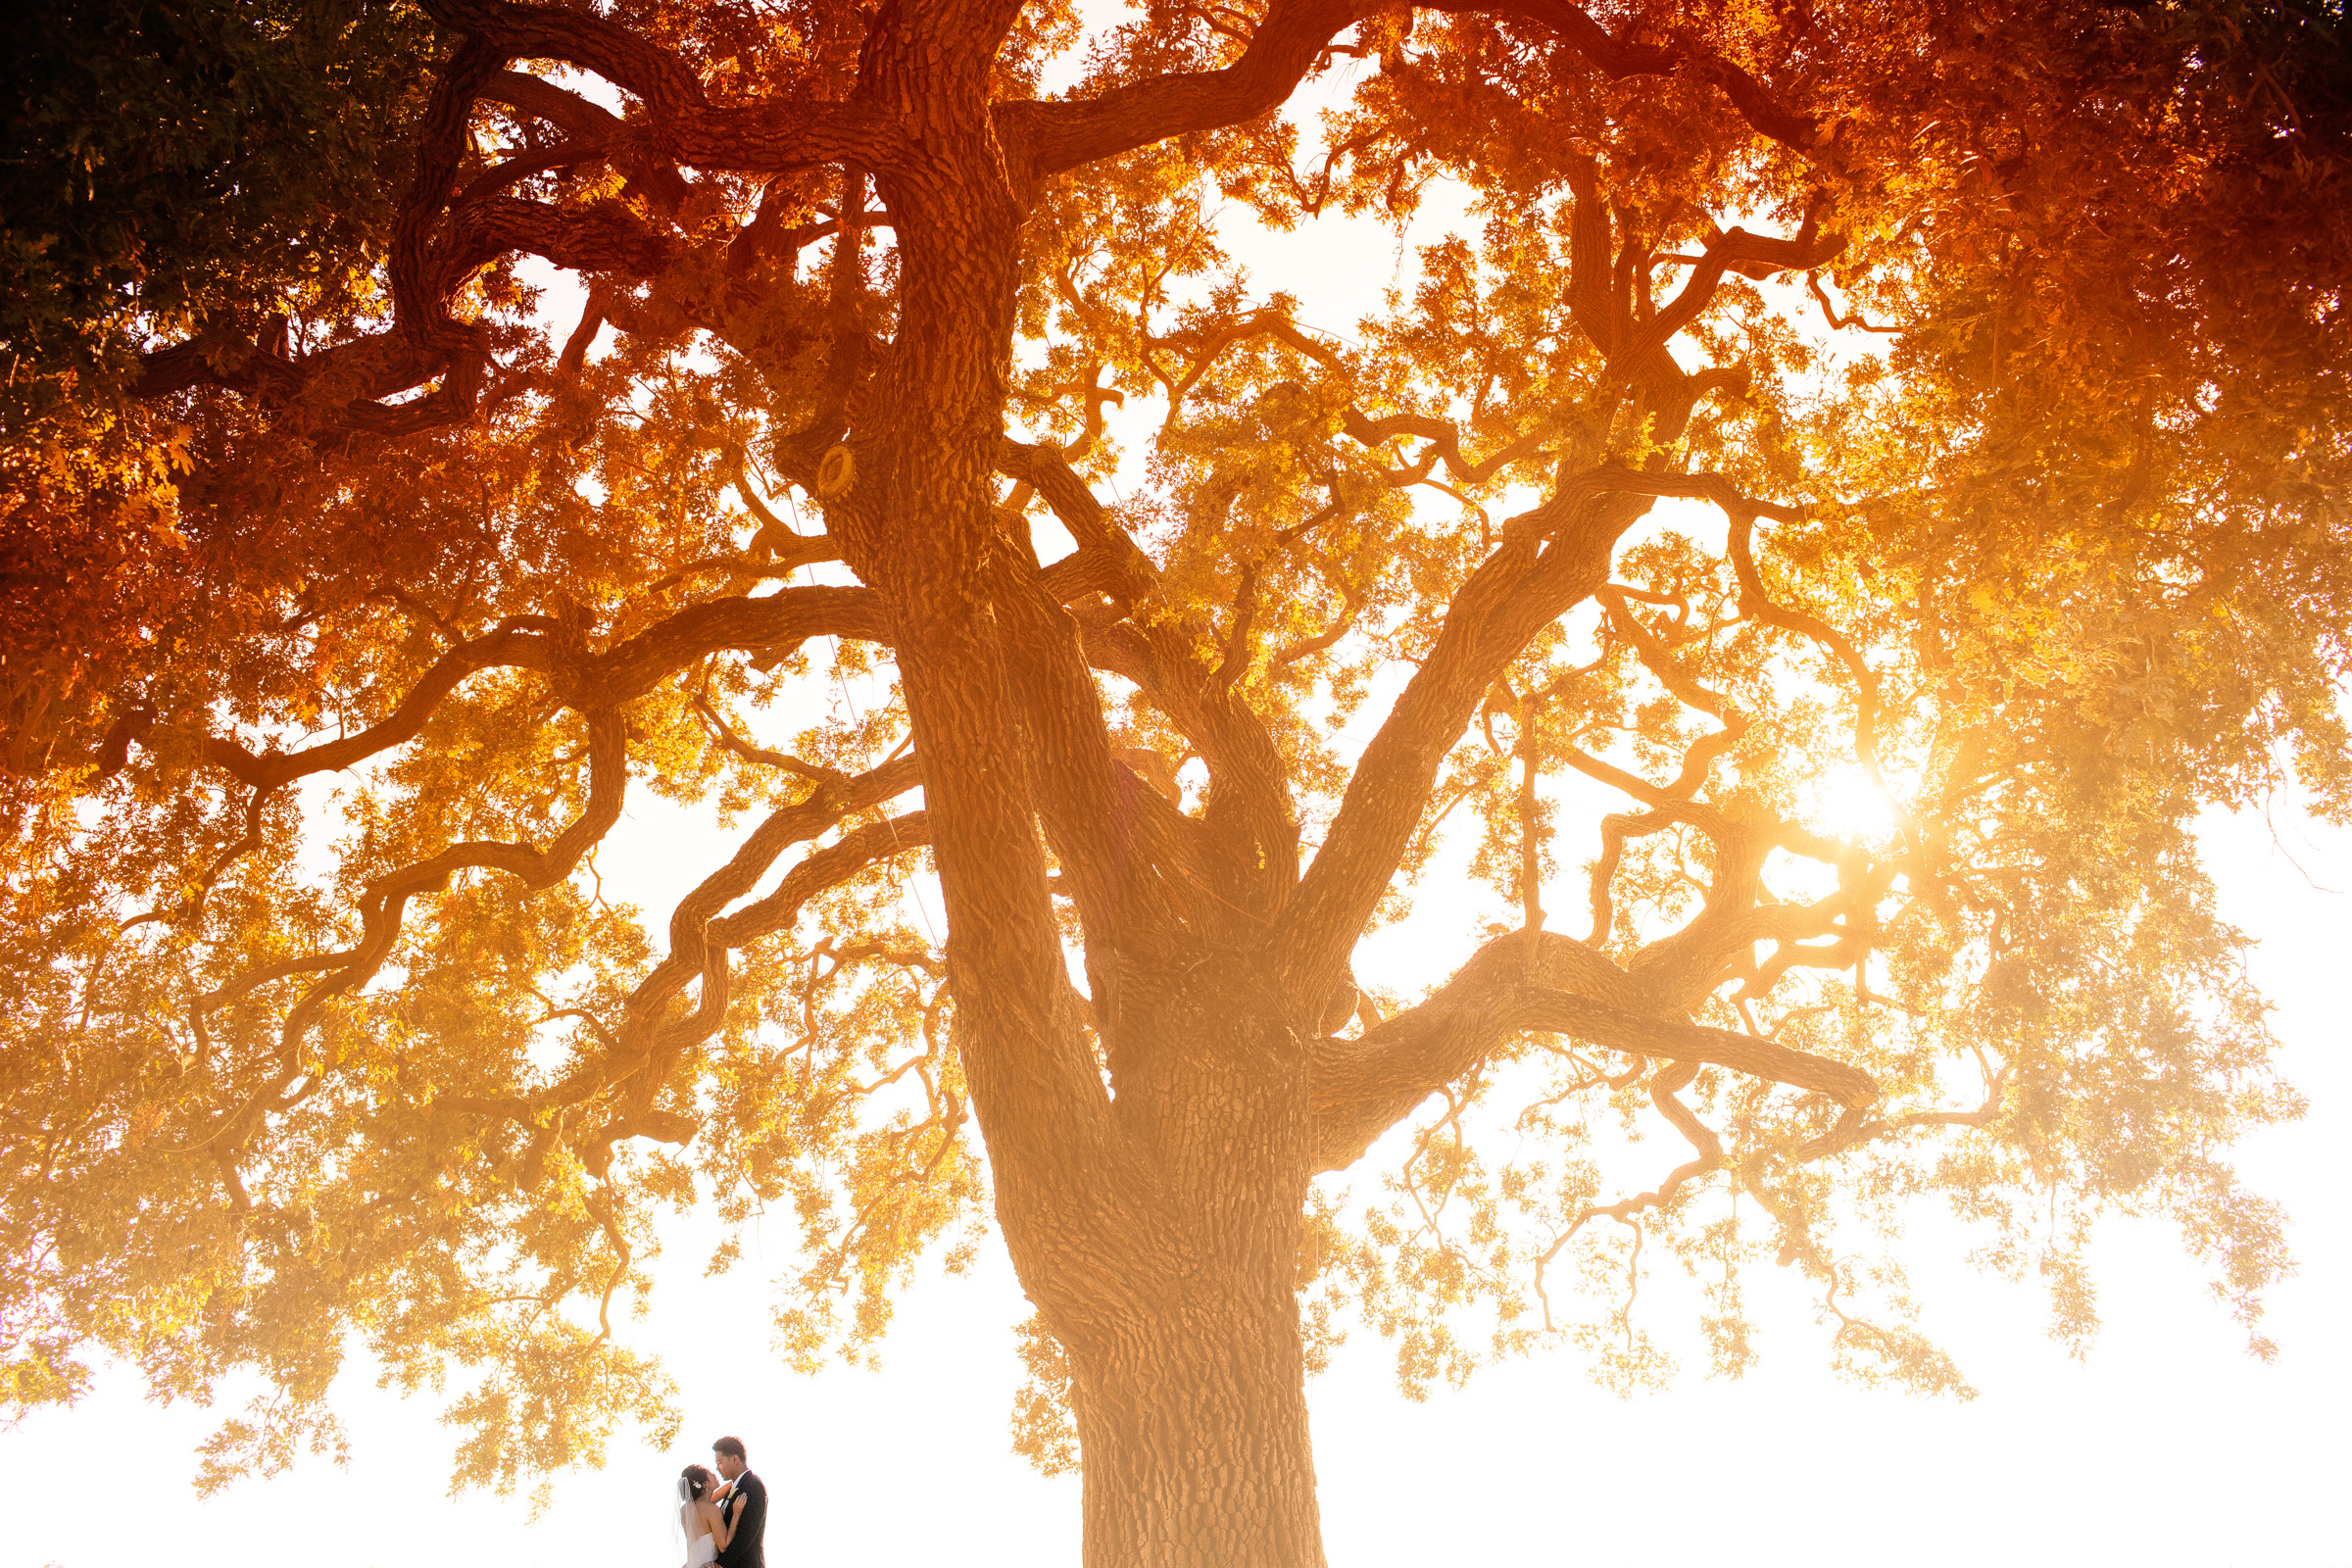 Bride and groom under majestic tree during golden hour - photo by Chrisman Studios